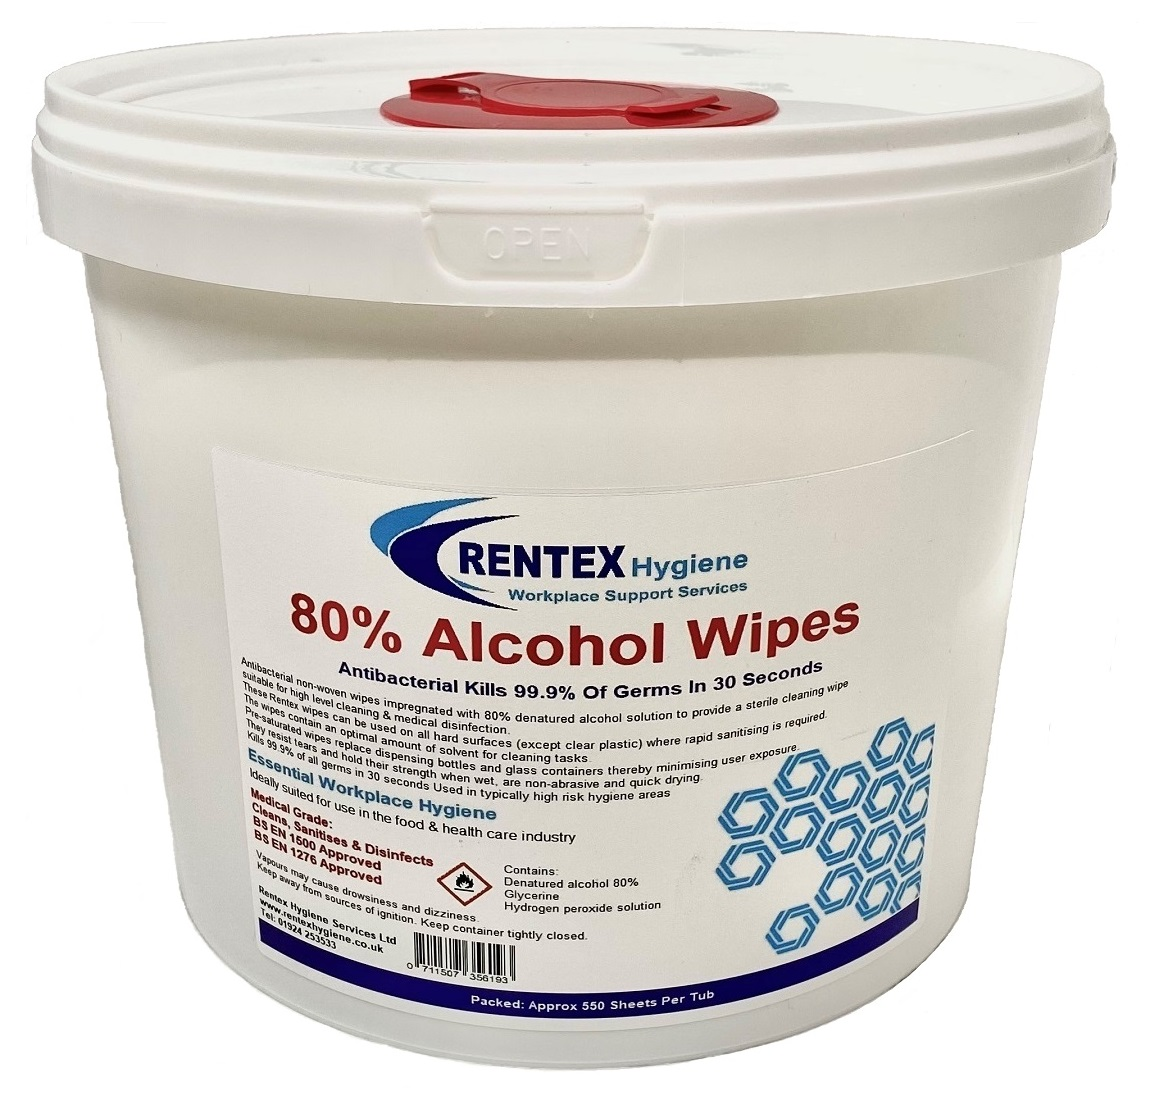 80% Alcohol Sanitiser Wipes 550 Tub